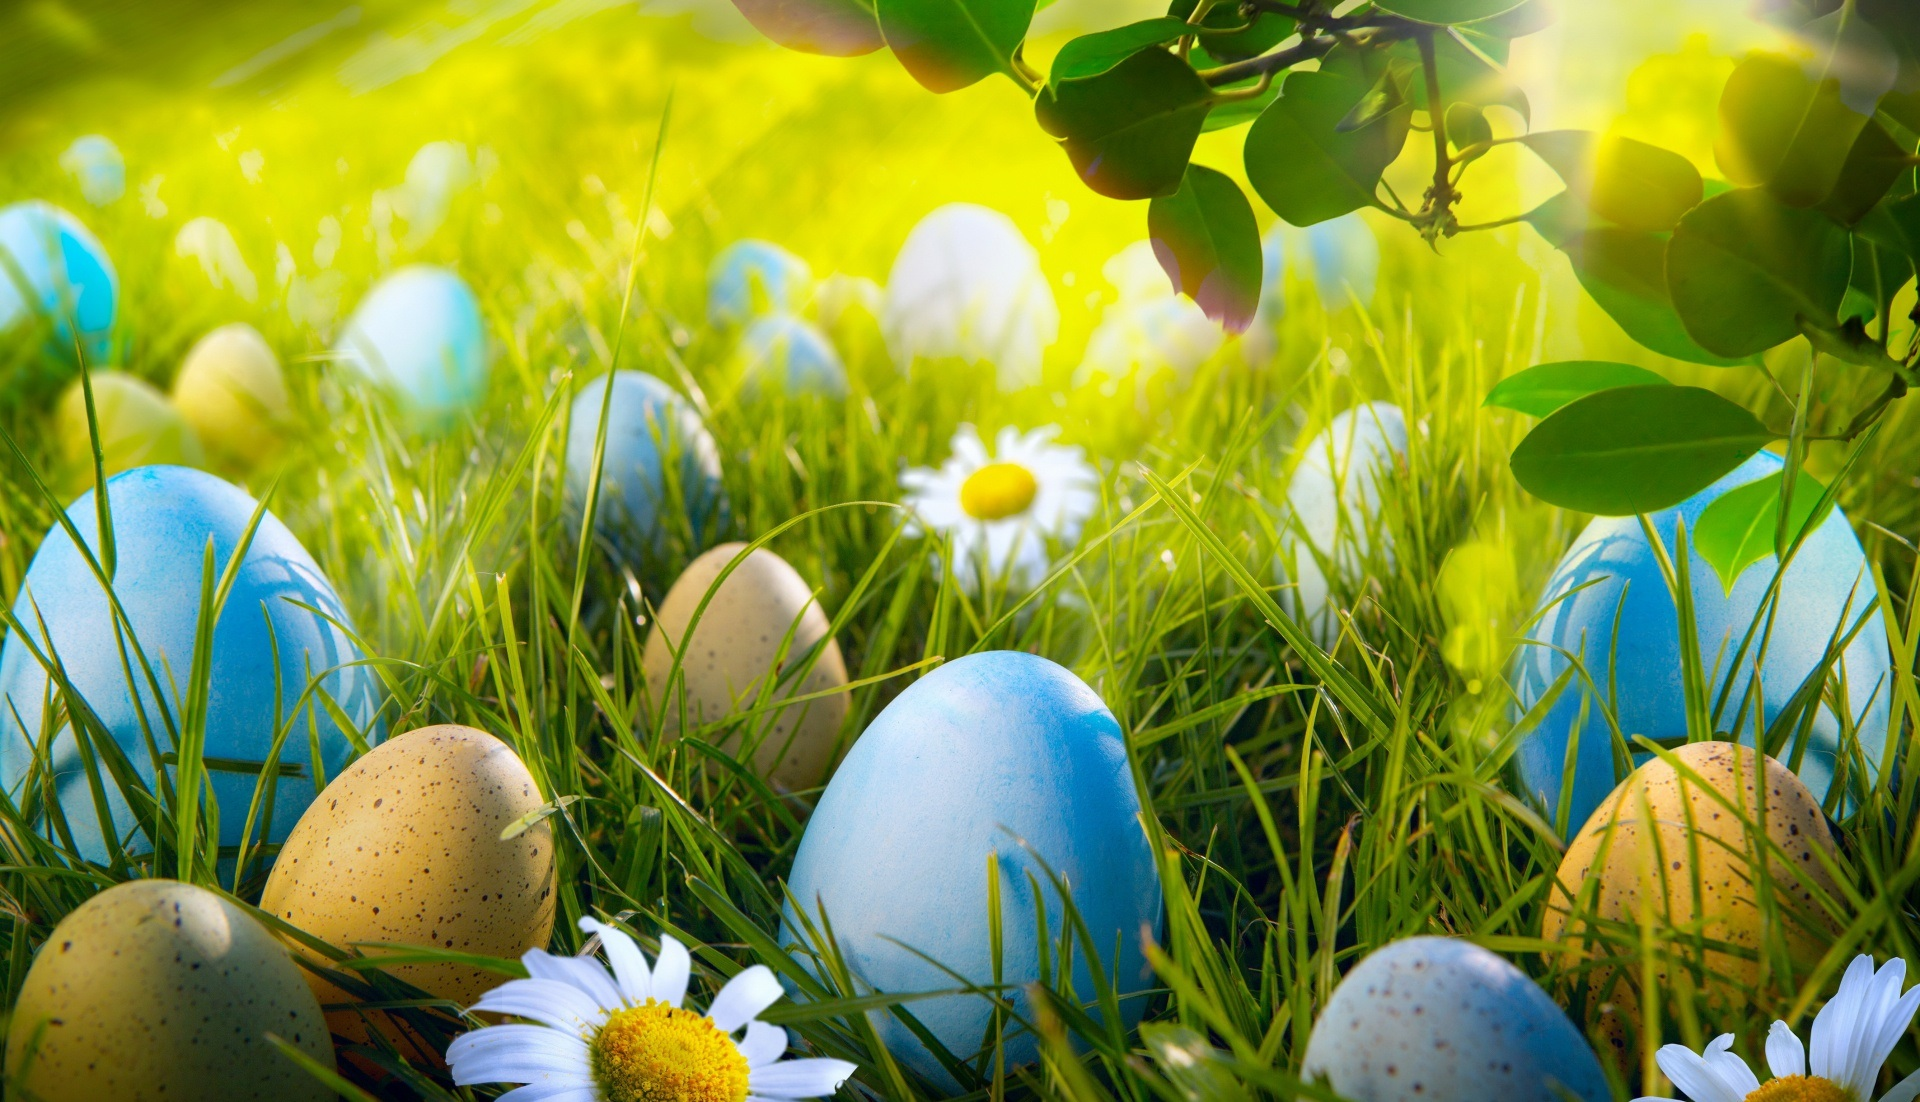 Easter 2018 Backgrounds HD Easter Images 1920x1102